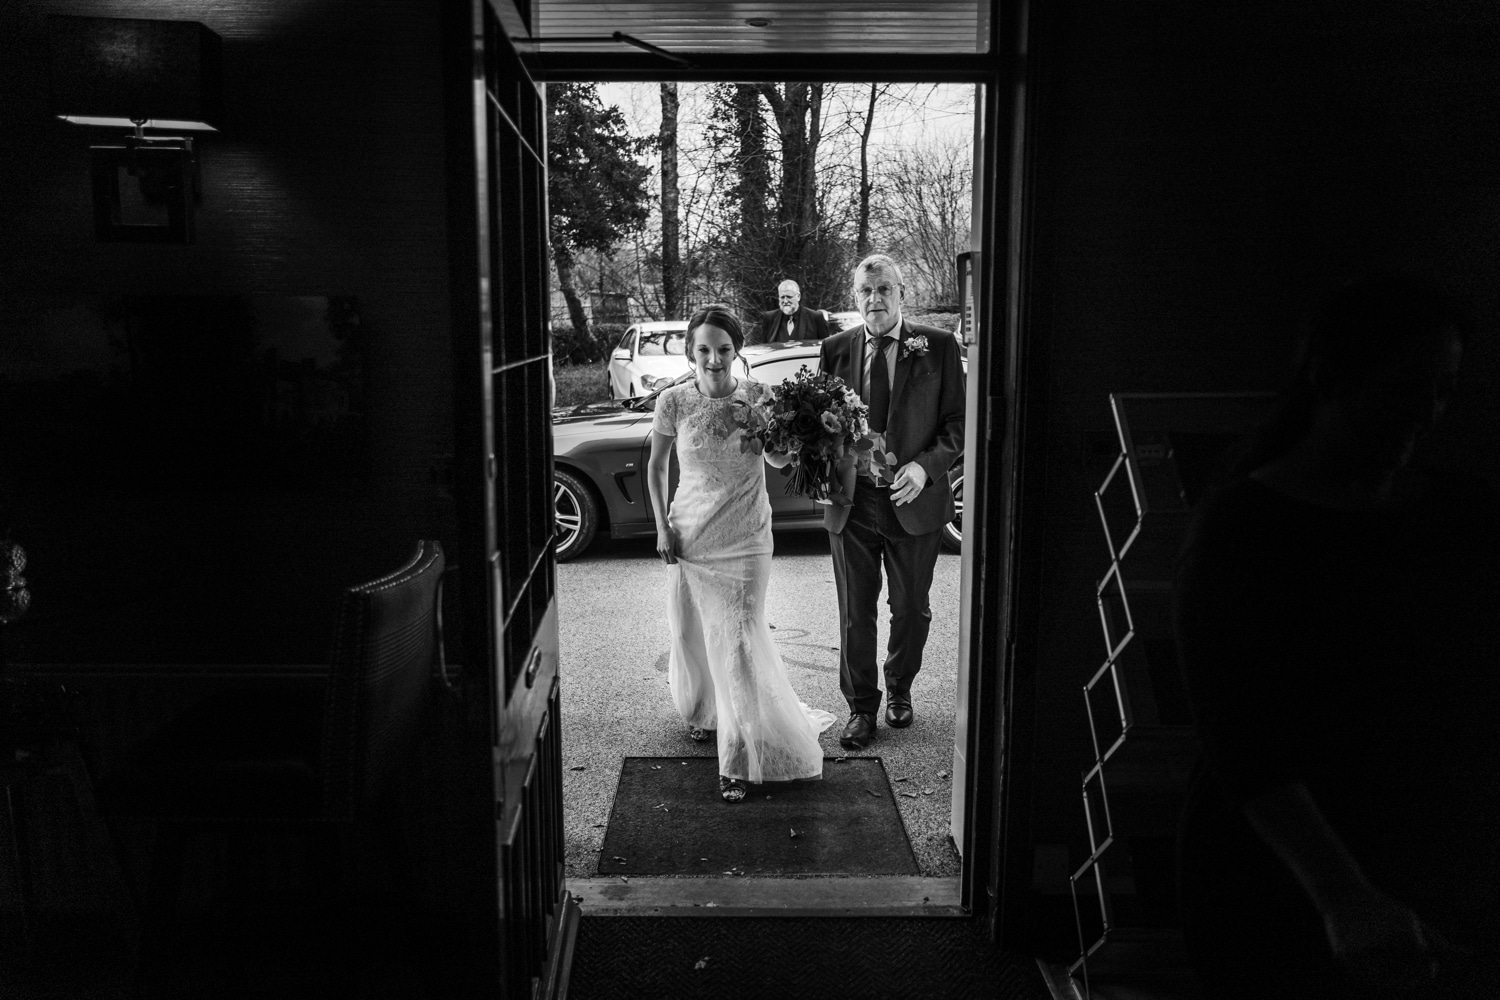 Bride walking through door with father for wedding at Fairyhill